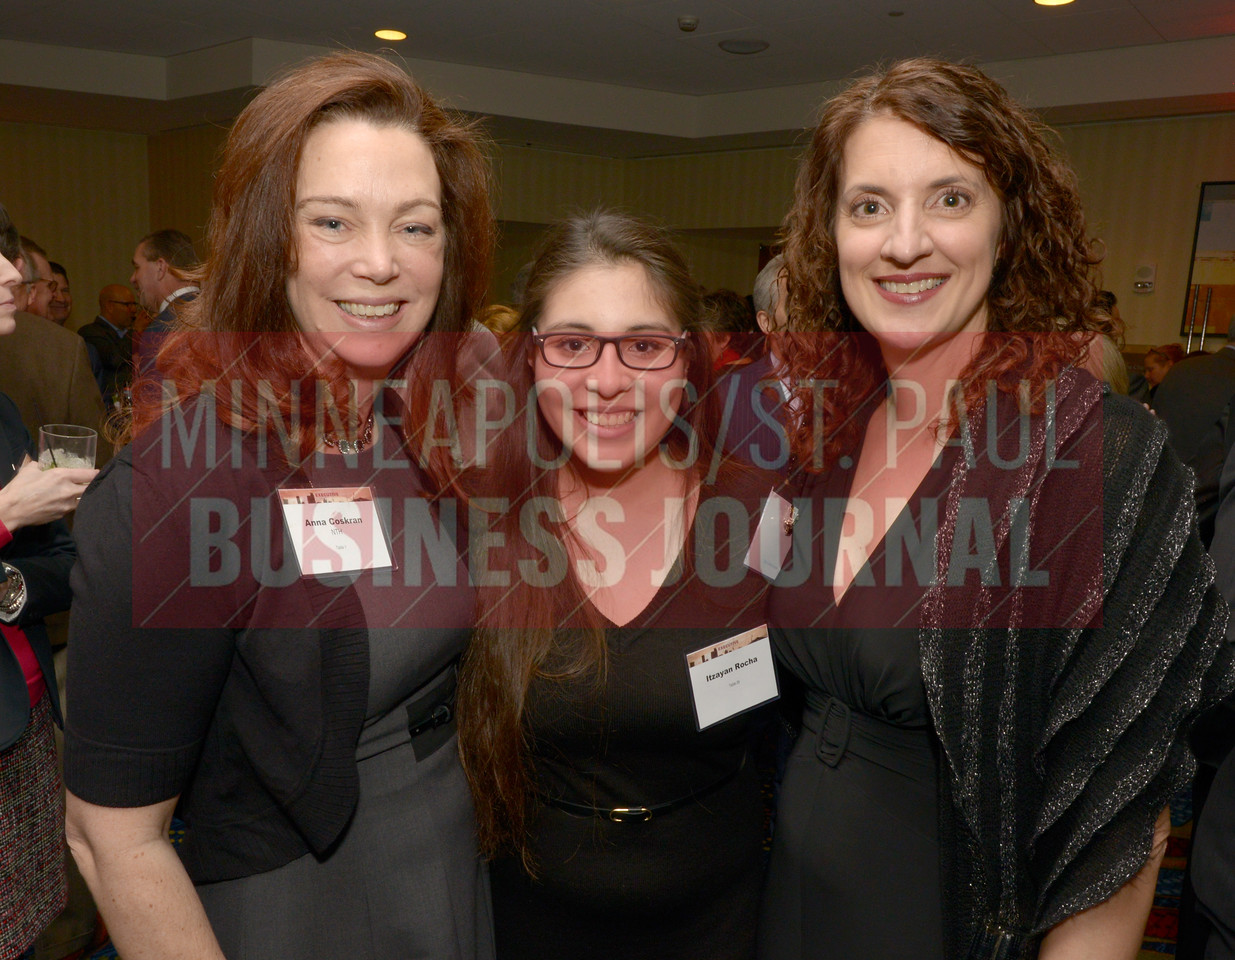 From left, Anna Coskran, Itzayan Rocha and Kris Donnelly